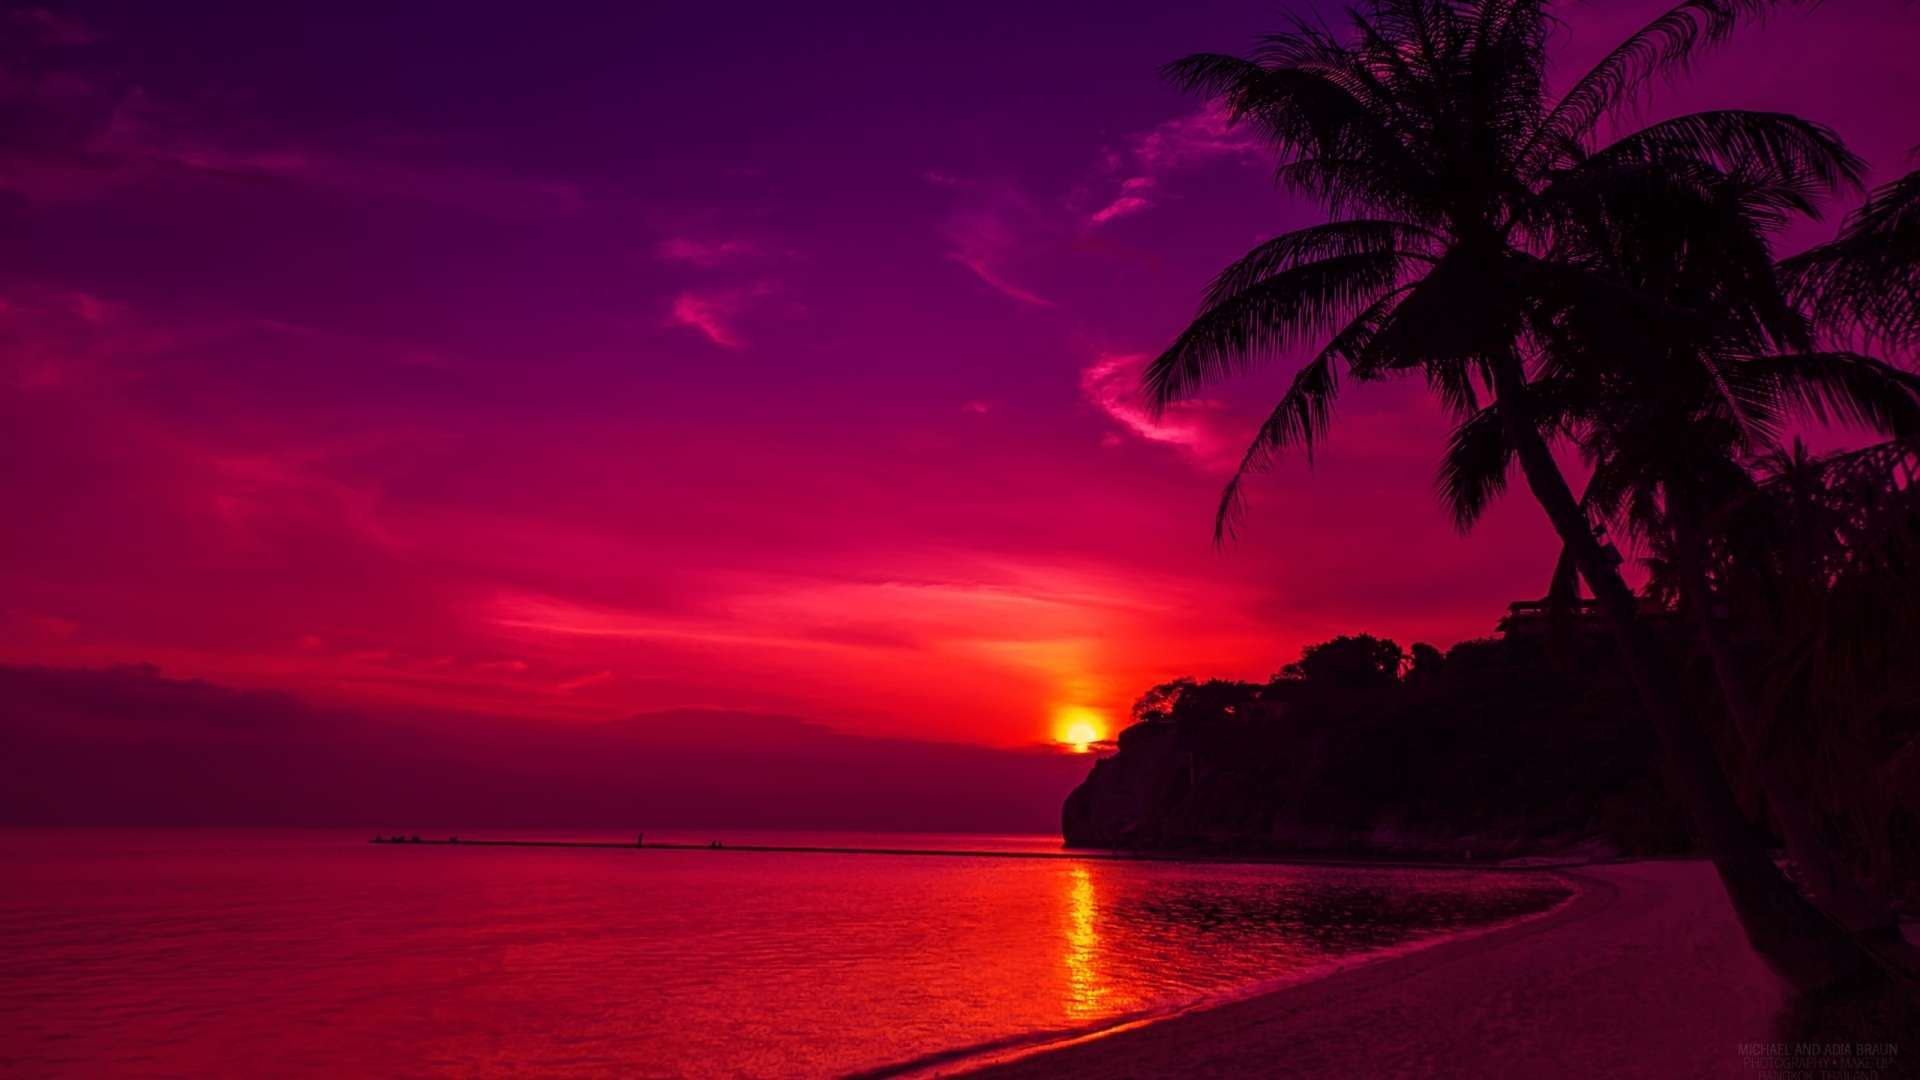 1920x1080 Hd Sunset: Sunset Wallpapers HD